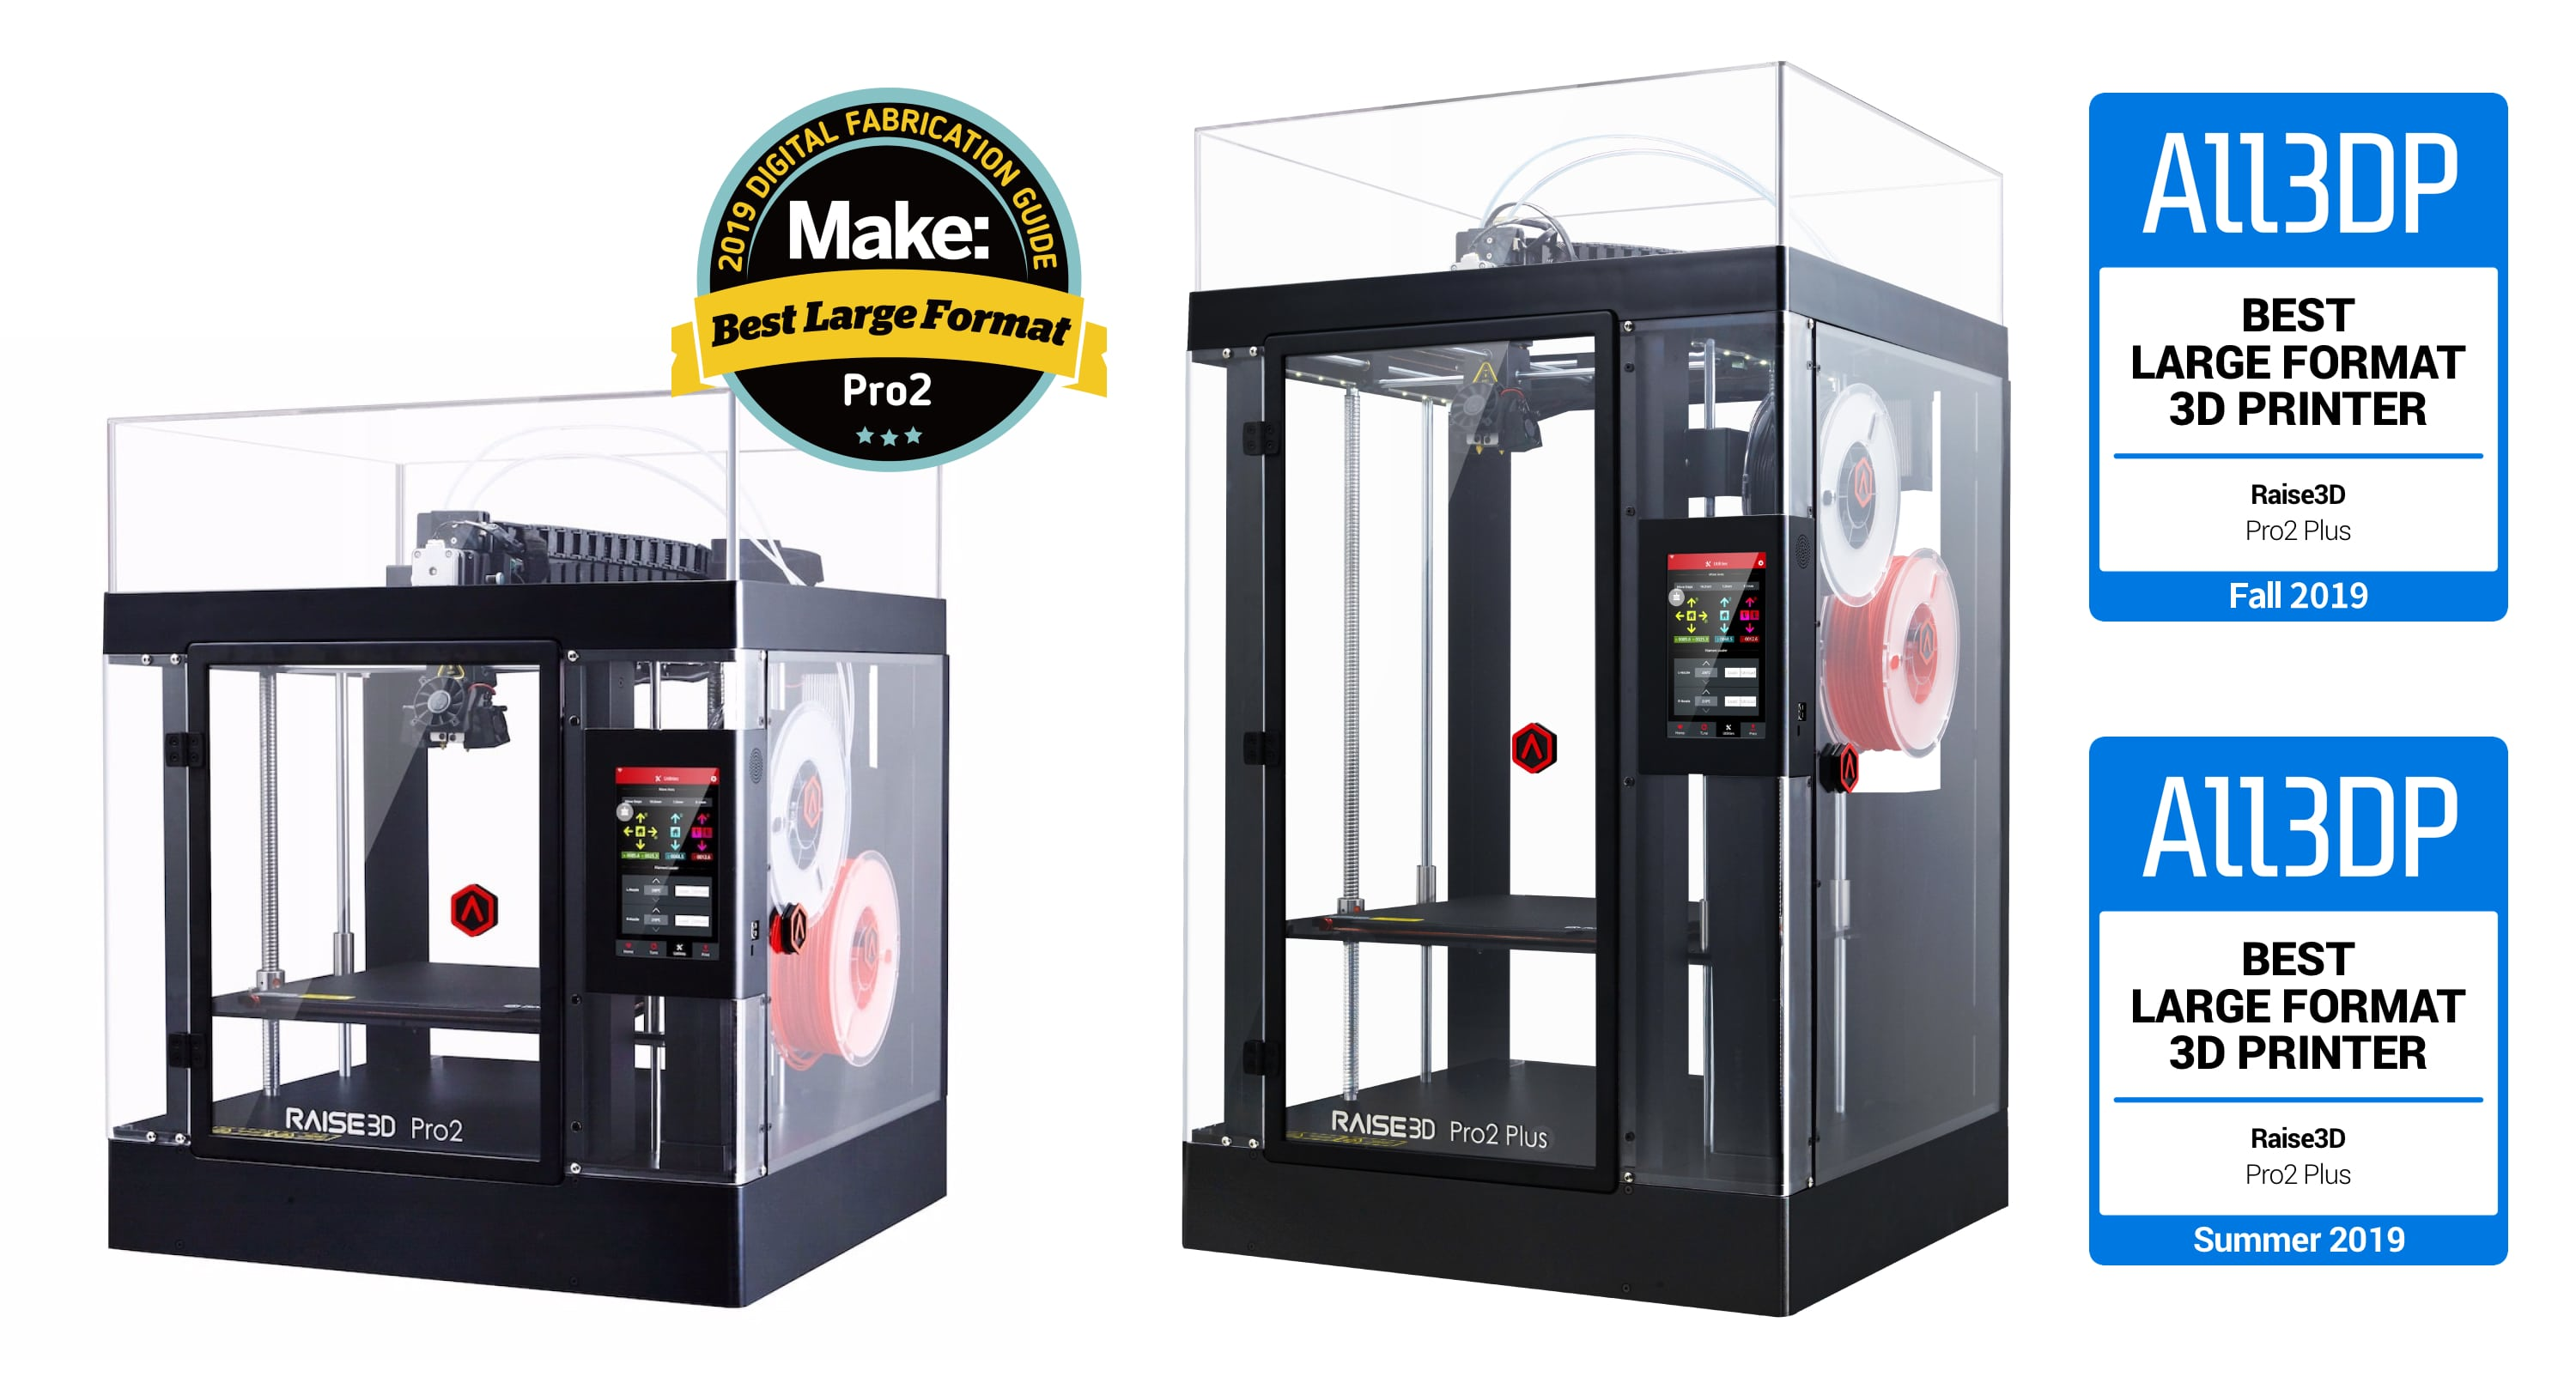 Raise3D Pro2 3D Printer and Pro2 Plus 3D Printer Awards Winning Banner